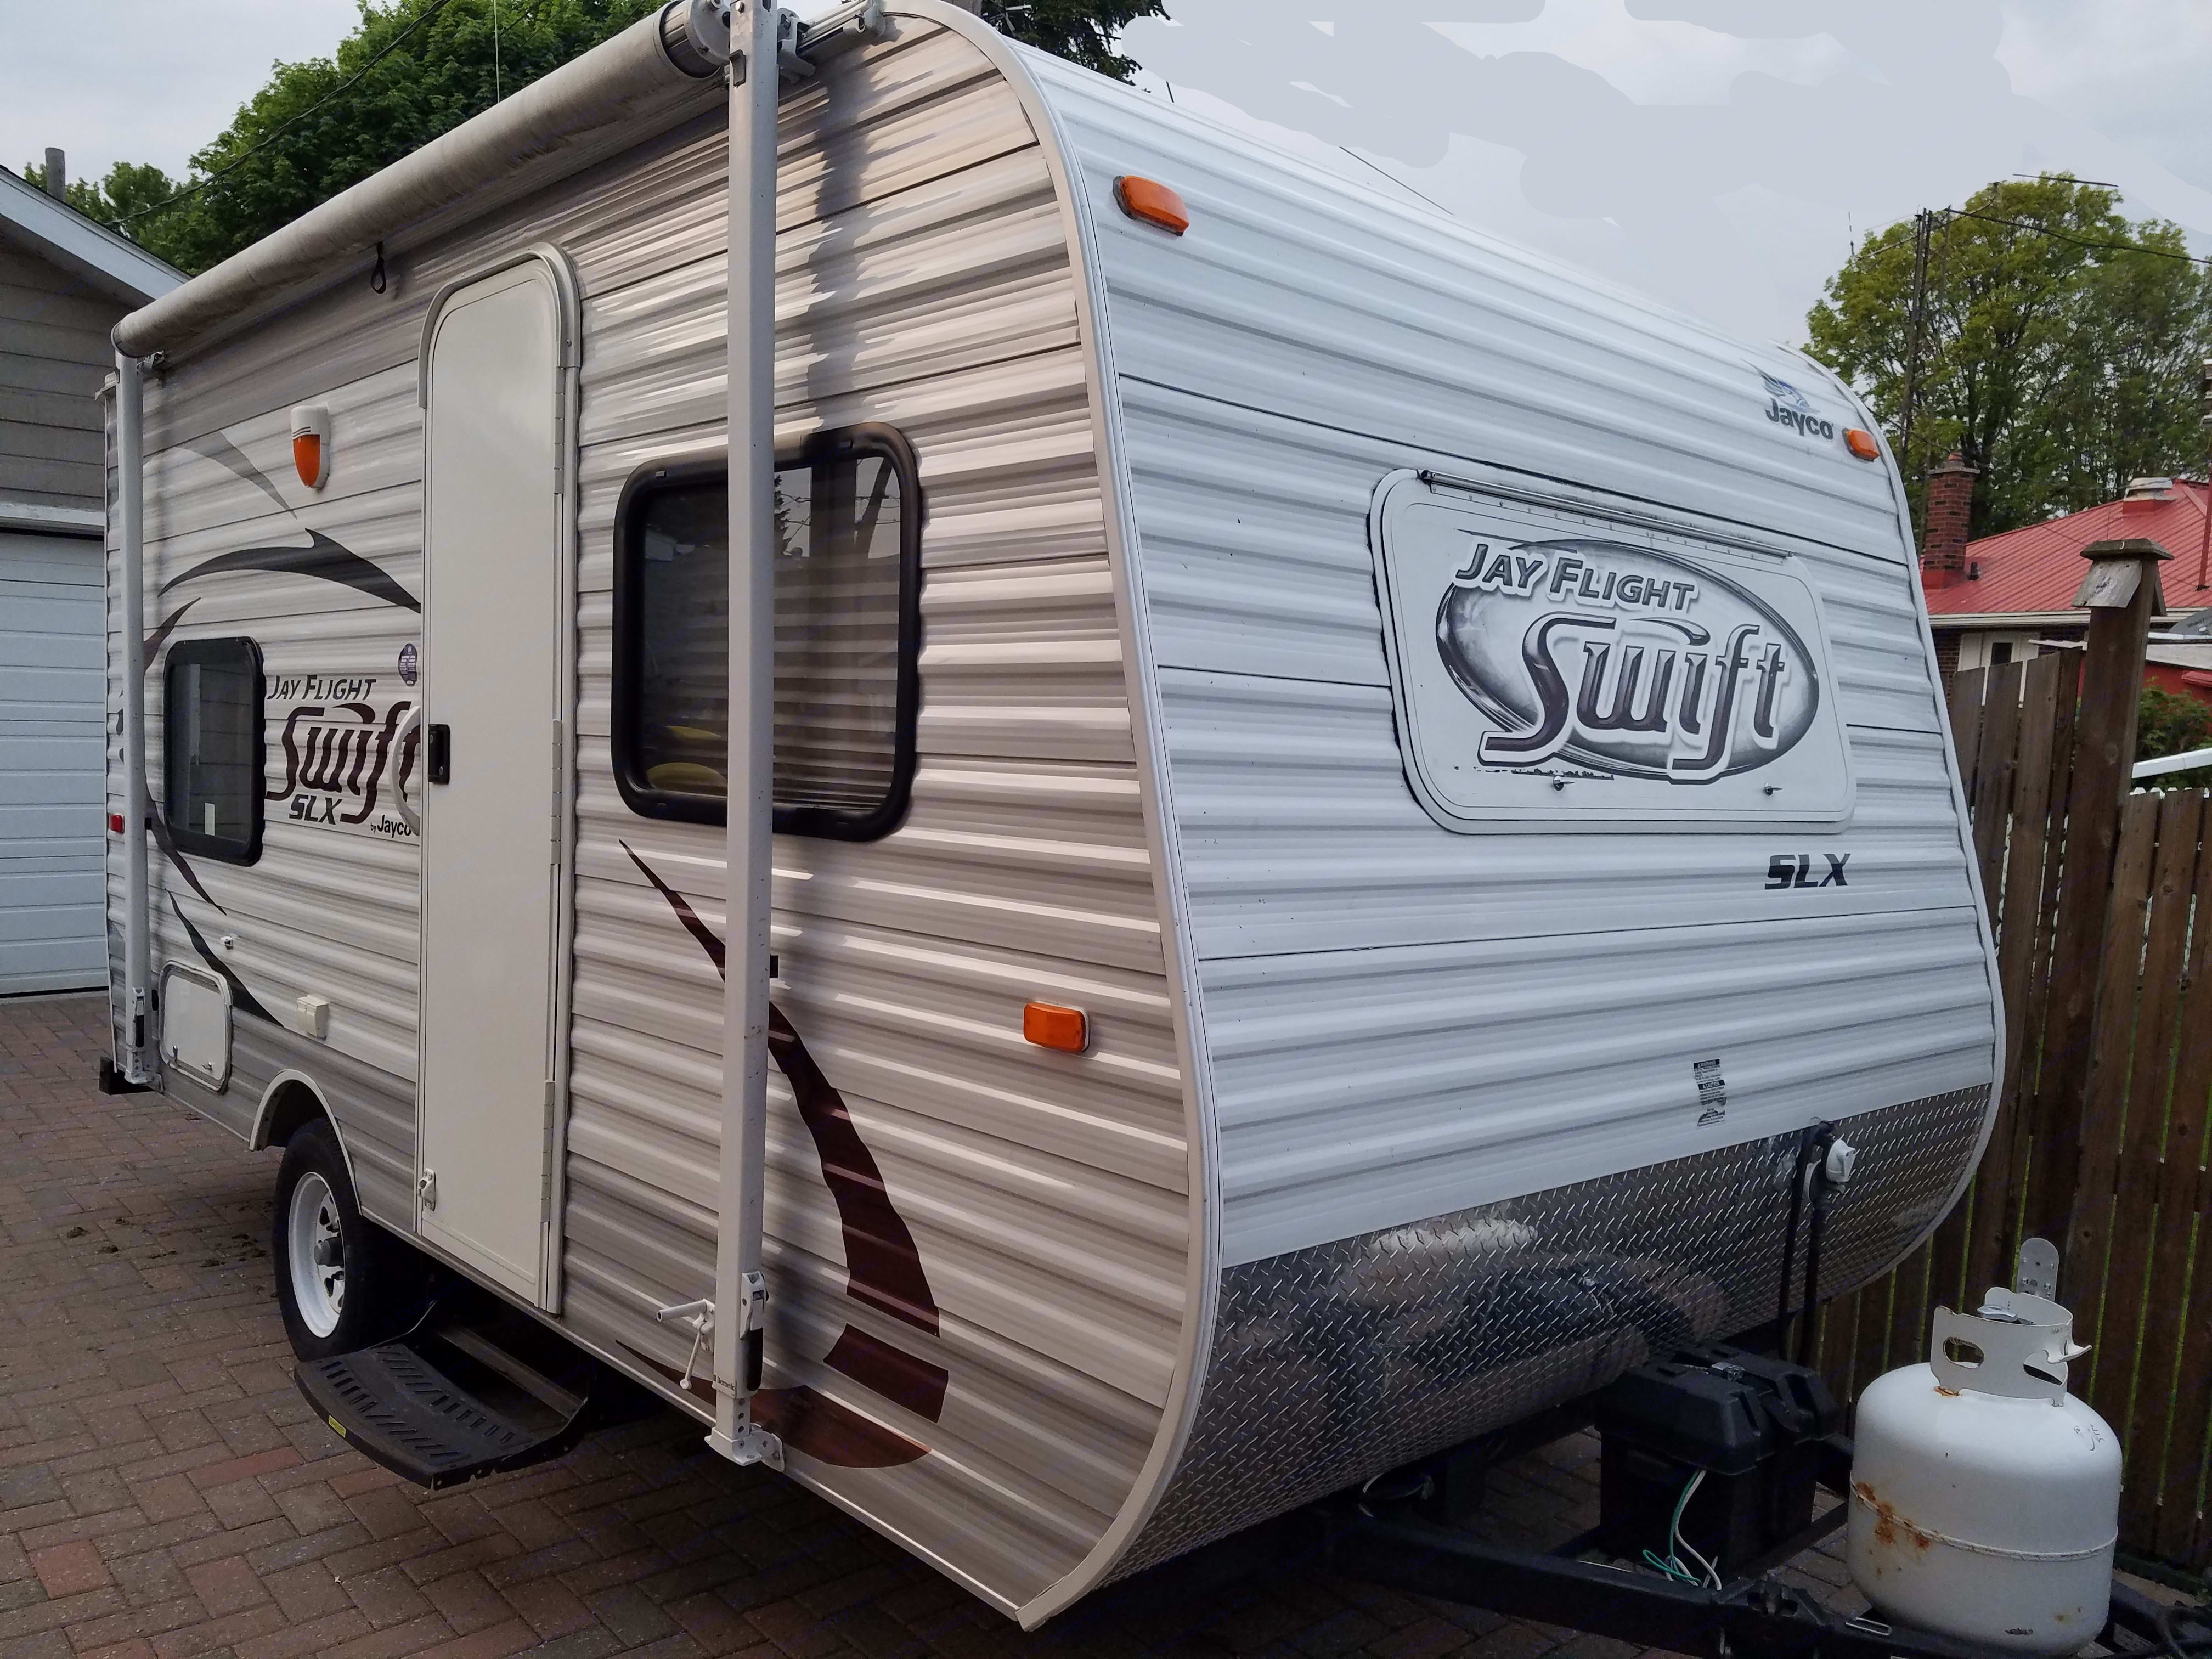 The Perfect size - for towing - for family camping. Jayco Jay Flight Swift 2014